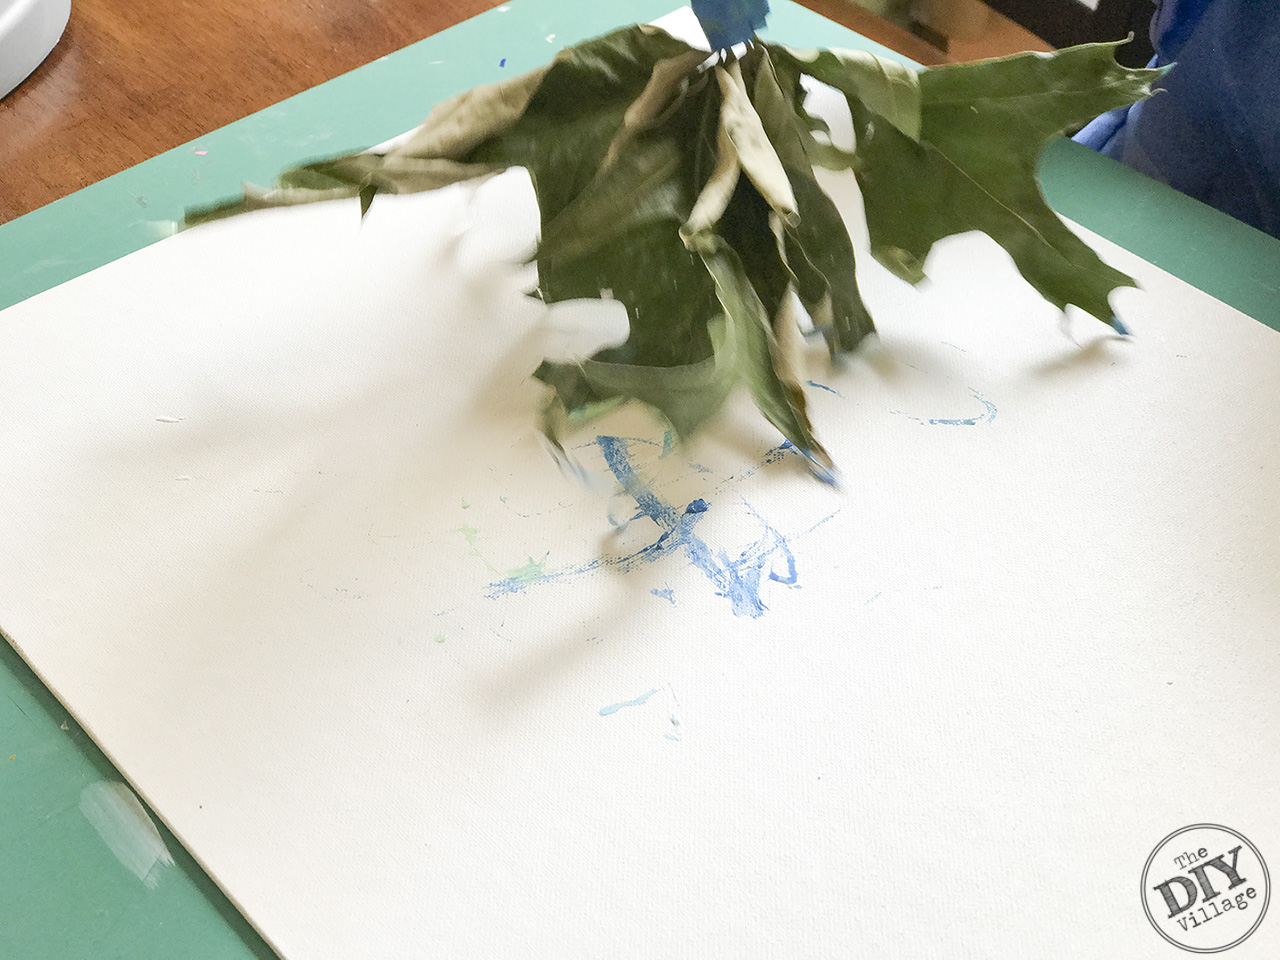 Creating art with kids doesn't have to be boring. Explore textures and different media by using found objects to paint. Leaf paint brush art is a great way to experiment.